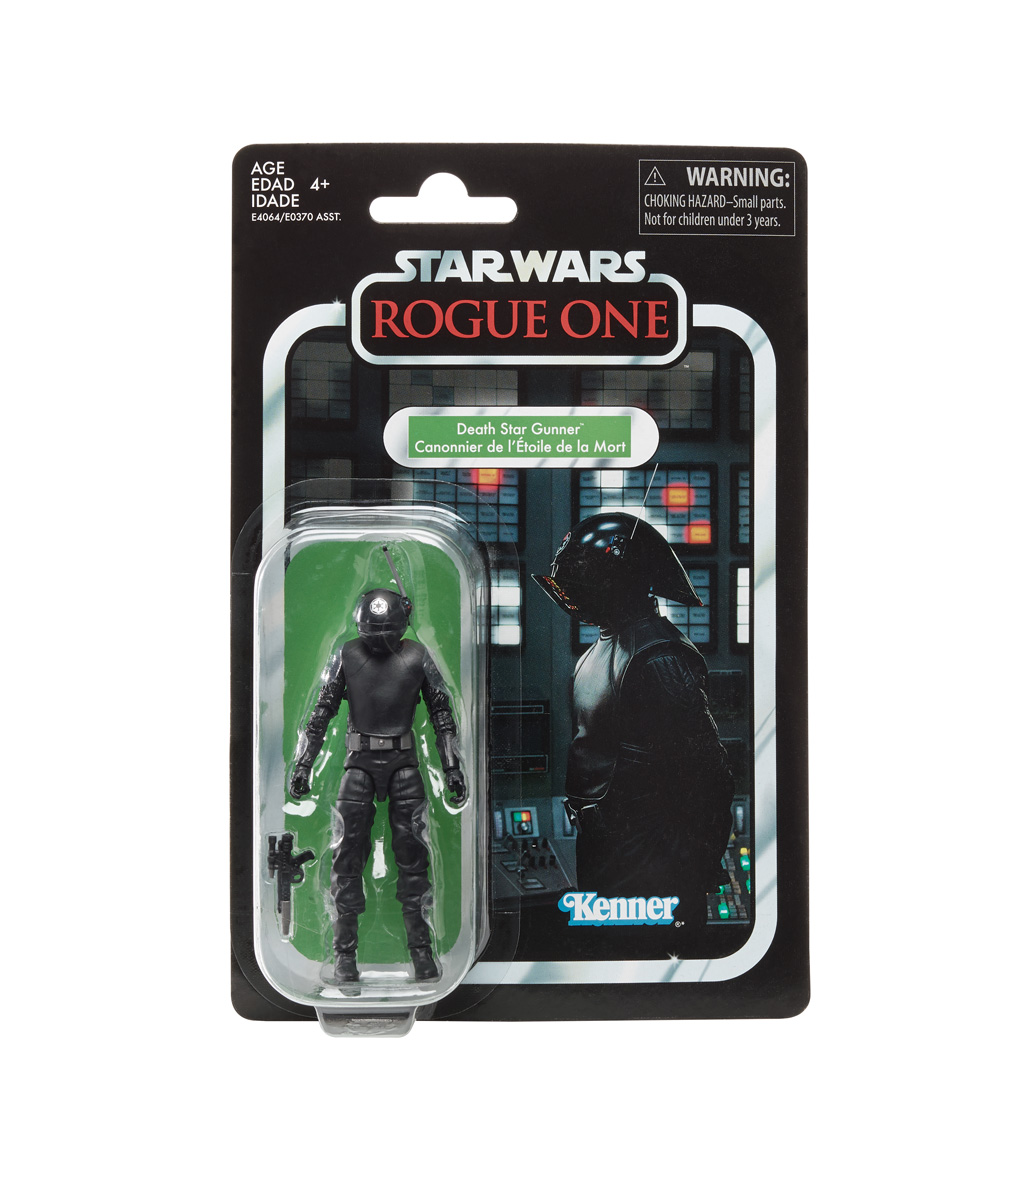 star-wars-the-vintage-collection-3-75-inch-figure-assortment-death-star-gunner-in-pck-1